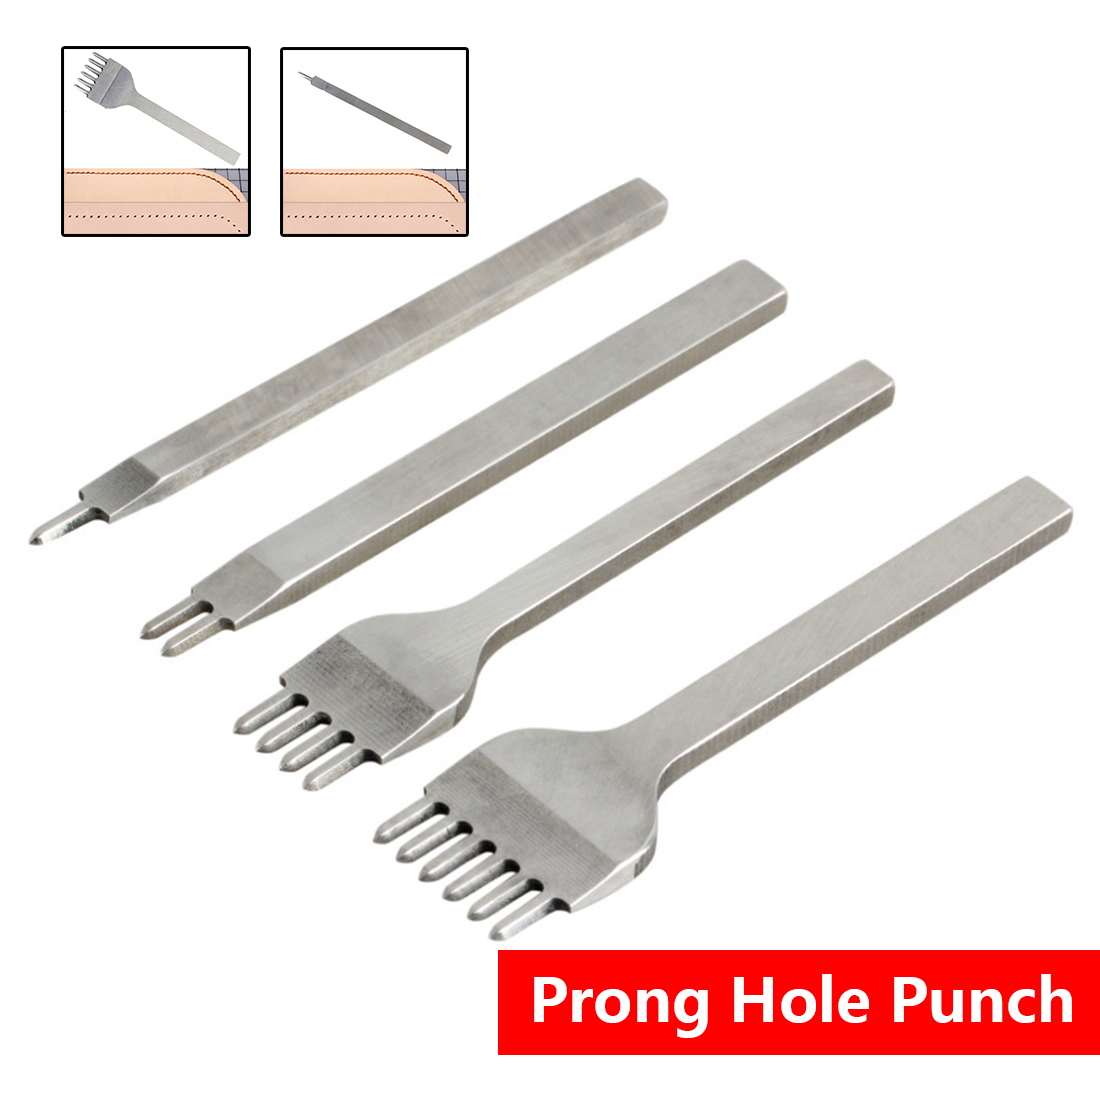 1 2 4 6 Prong Hole Punch Punch tool chisel 1pc 3mm/0.12